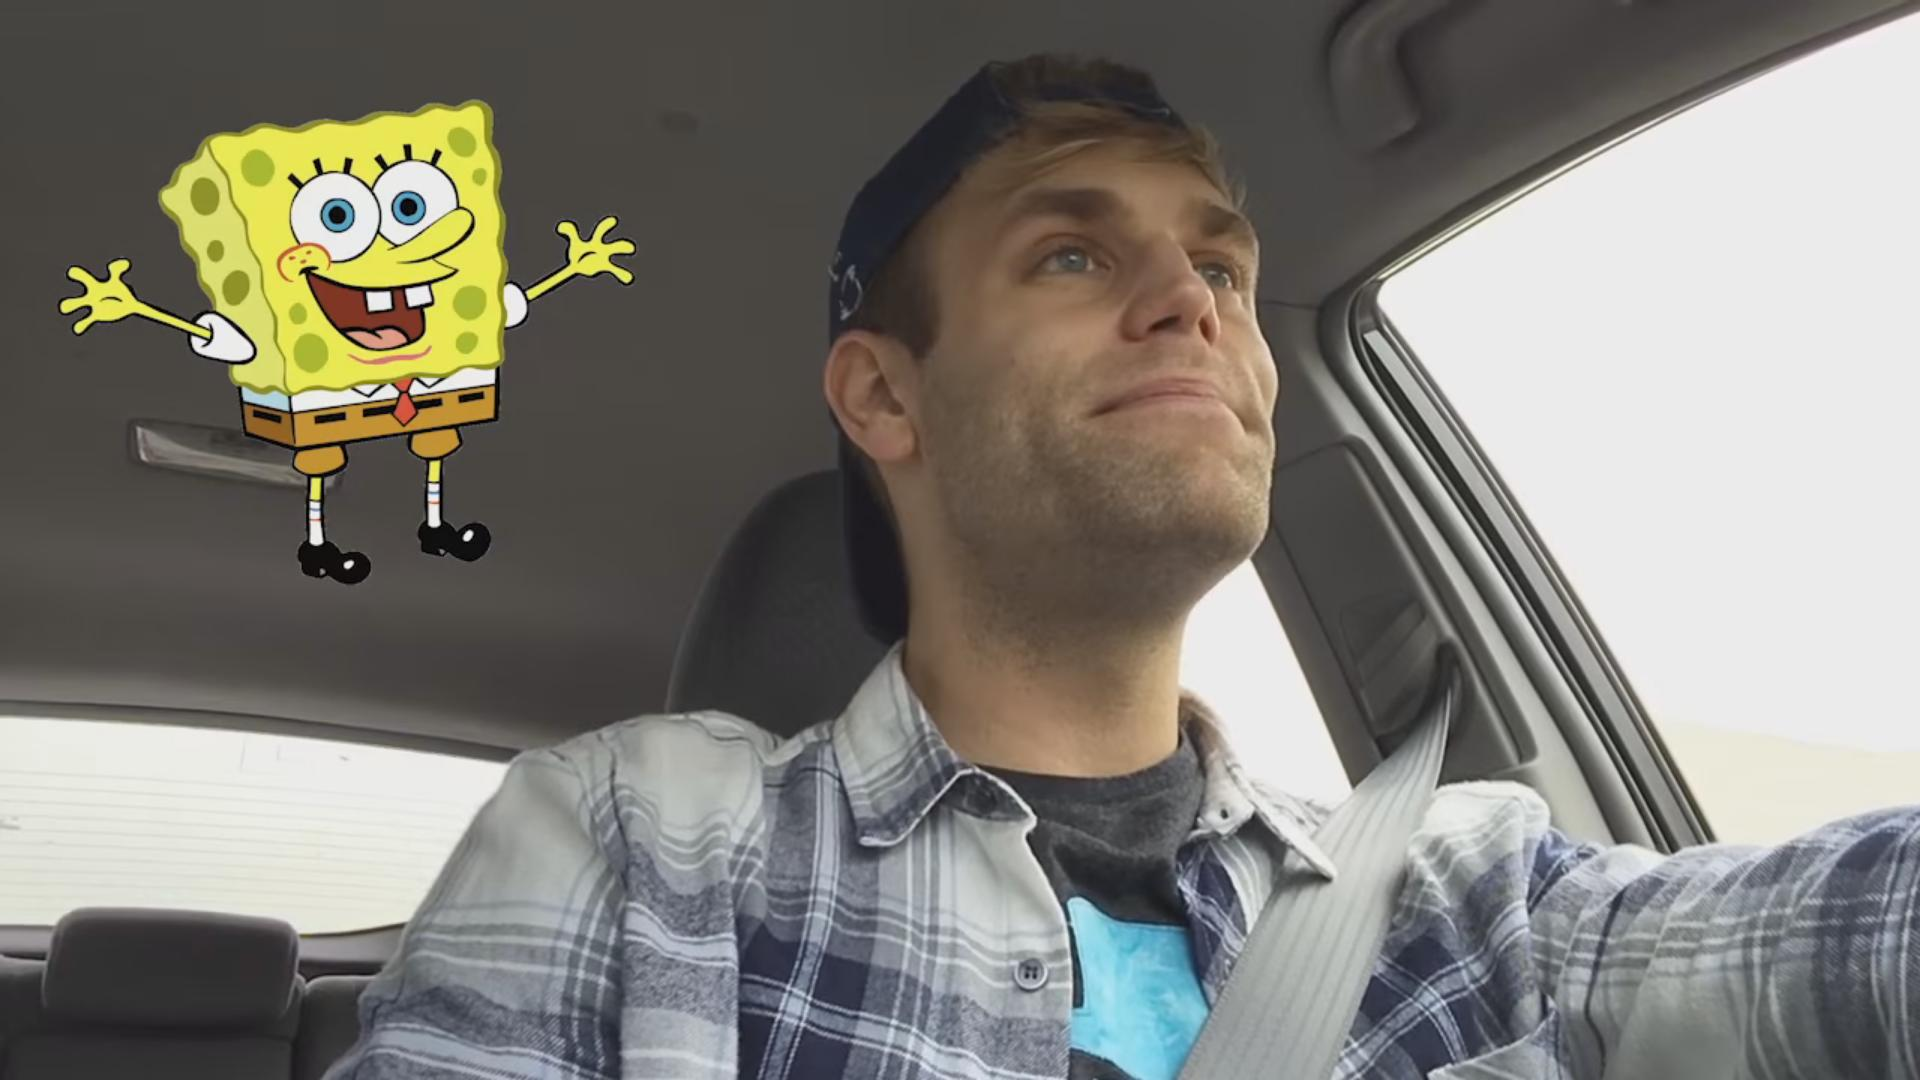 He Makes Impressions of the SpongeBob Characters in His Car